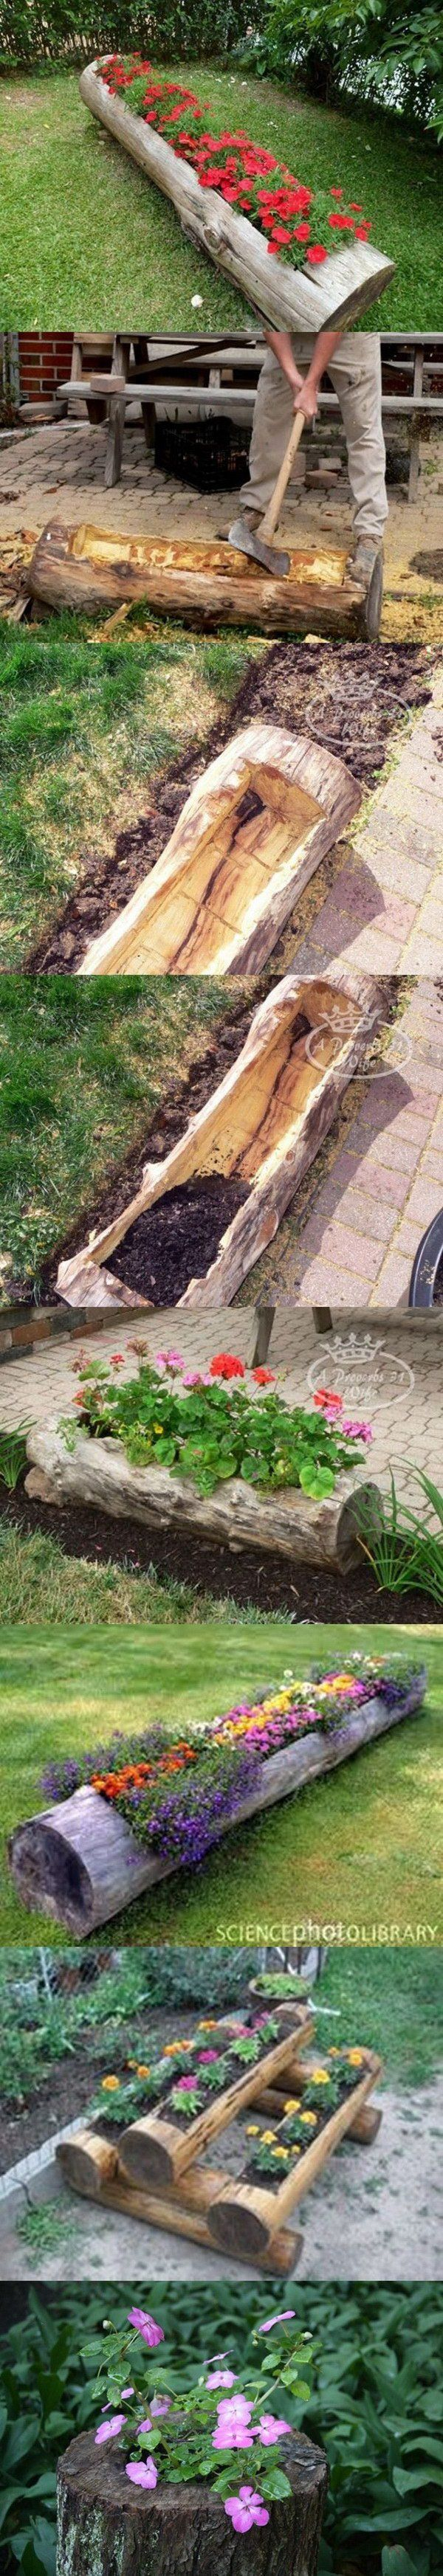 Garden, backyard, landscape, Stacey Sauer, Flower Mound,  Real Estate, North Dallas Metroplex homes for Sale, Home Values in North Dallas Metroplex, Listing your home, Buying a Home, Addison, Argyle, Carrollton, Coppell, Denton, Fort Worth, Lewisville, Southlake, Keller Williams, Realtor, Lantana, Make Beautiful Log Garden Planter (scheduled via http://www.tailwindapp.com?utm_source=pinterest&utm_medium=twpin&utm_content=post94909769&utm_campaign=scheduler_attribution)